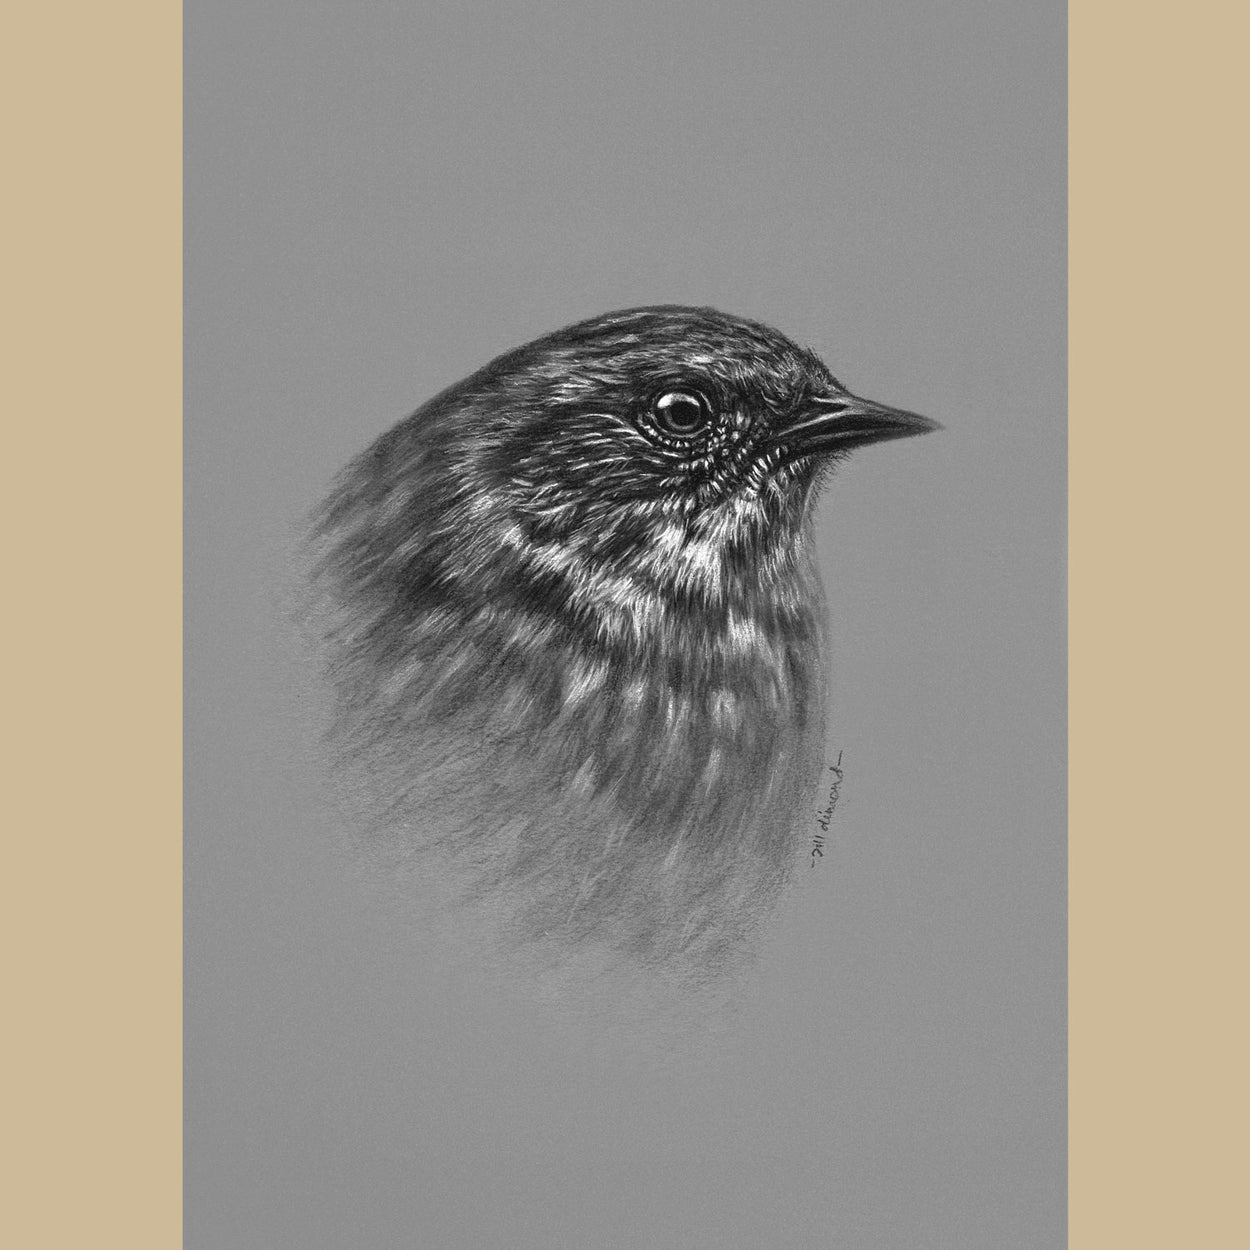 Dunnock Bird Charcoal Drawing - The Thriving Wild - Jill Dimond